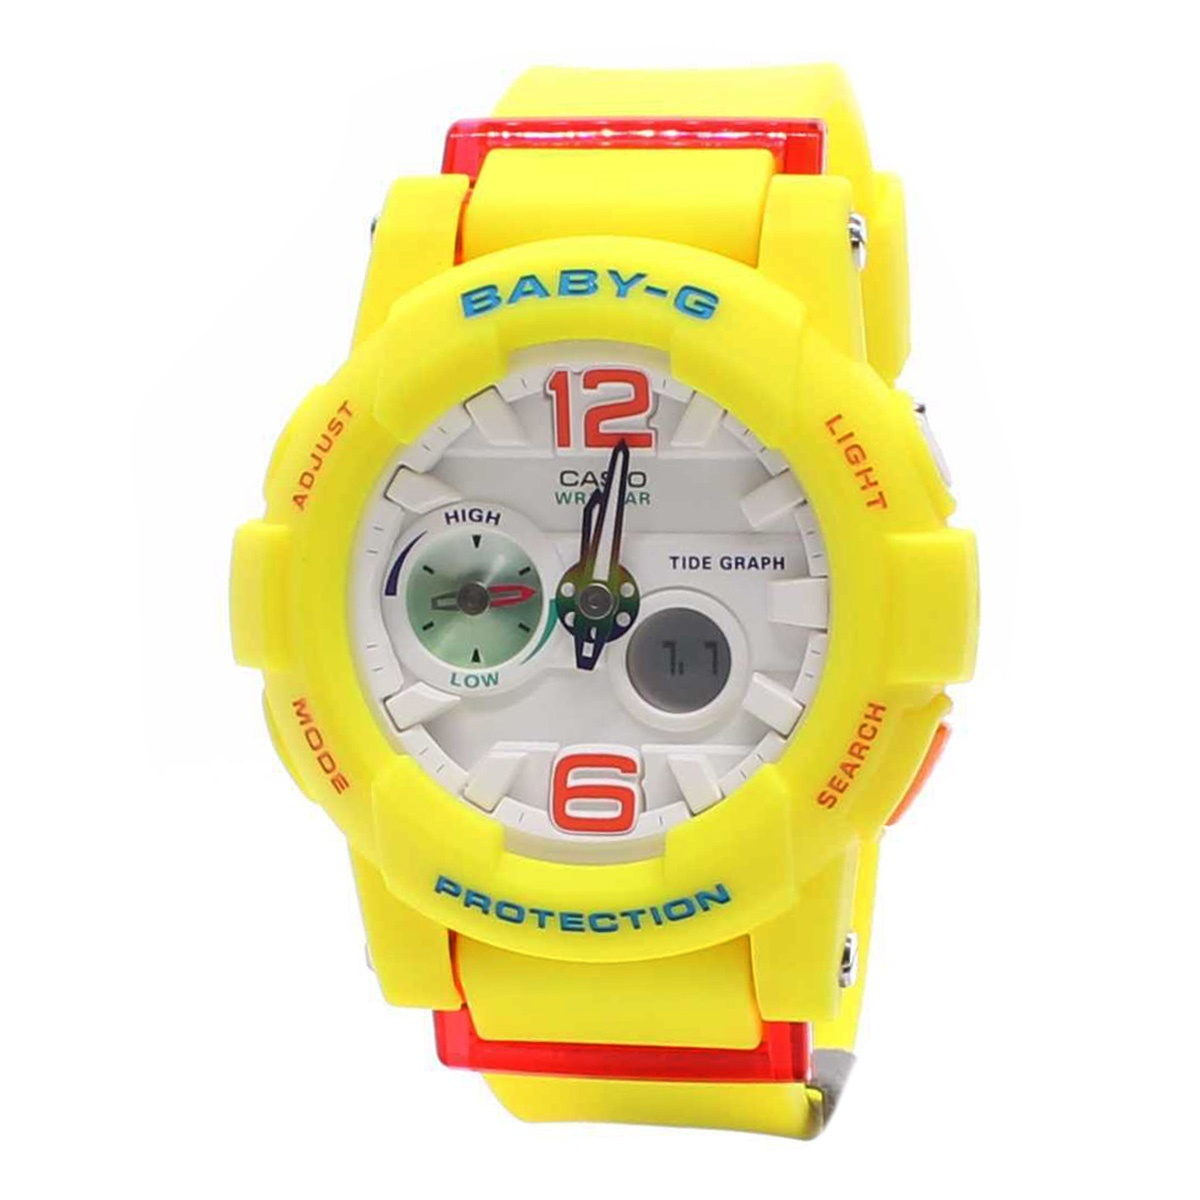 Qoo10 Casio Bga 180 9b Watch Jewelry Baby G 2b Show All Item Images